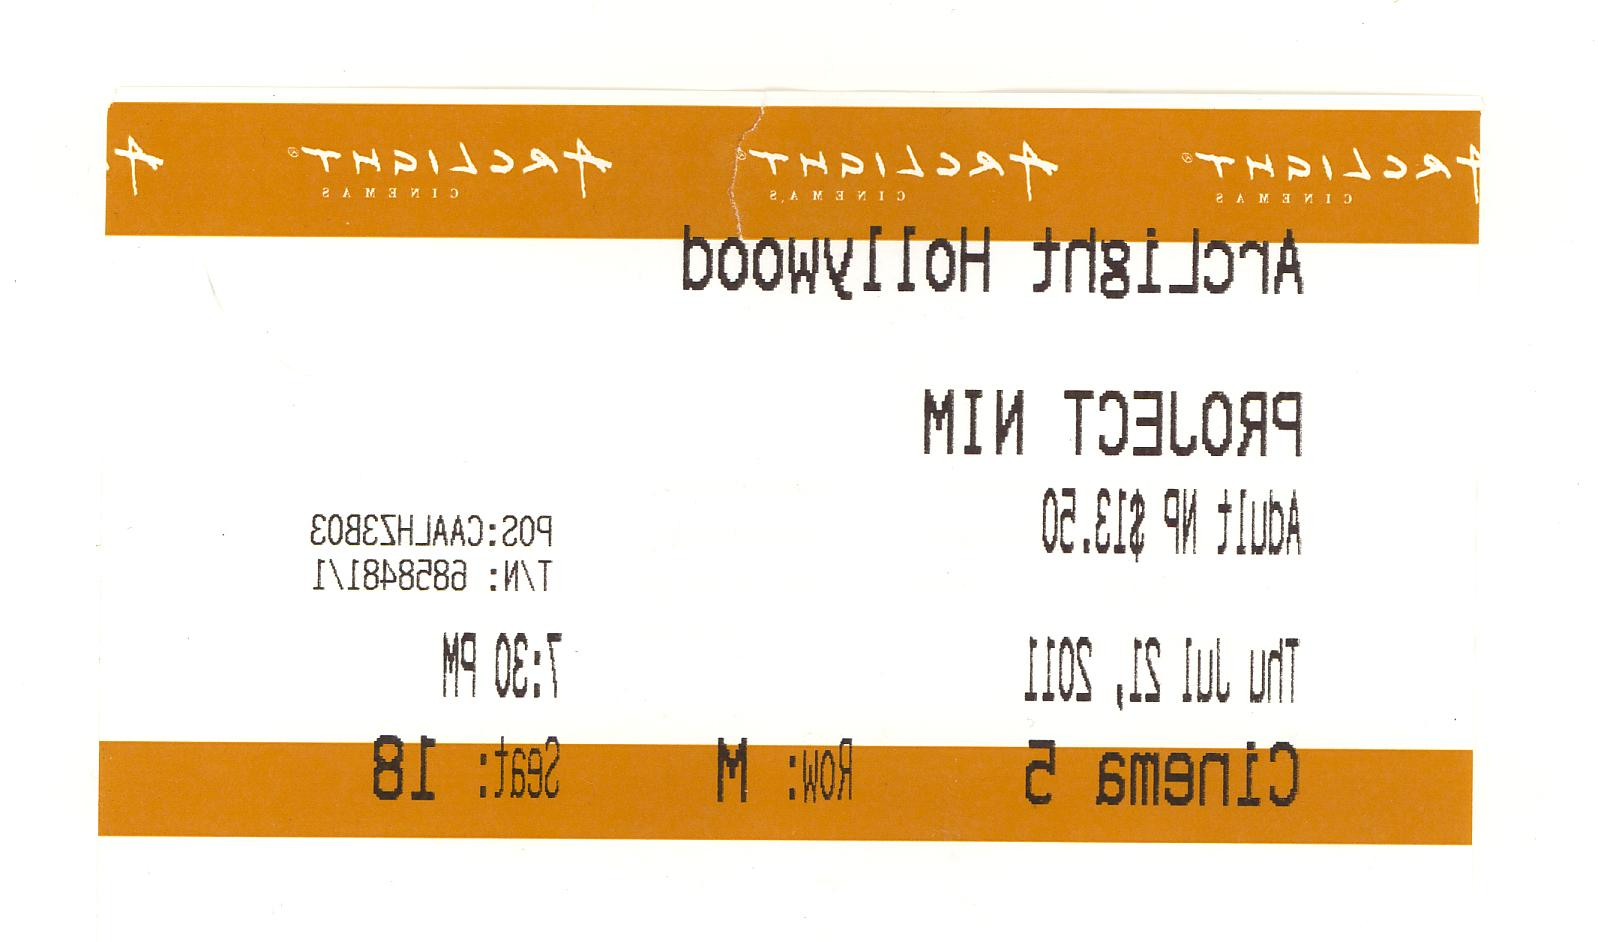 Project Nim movie ticket stub